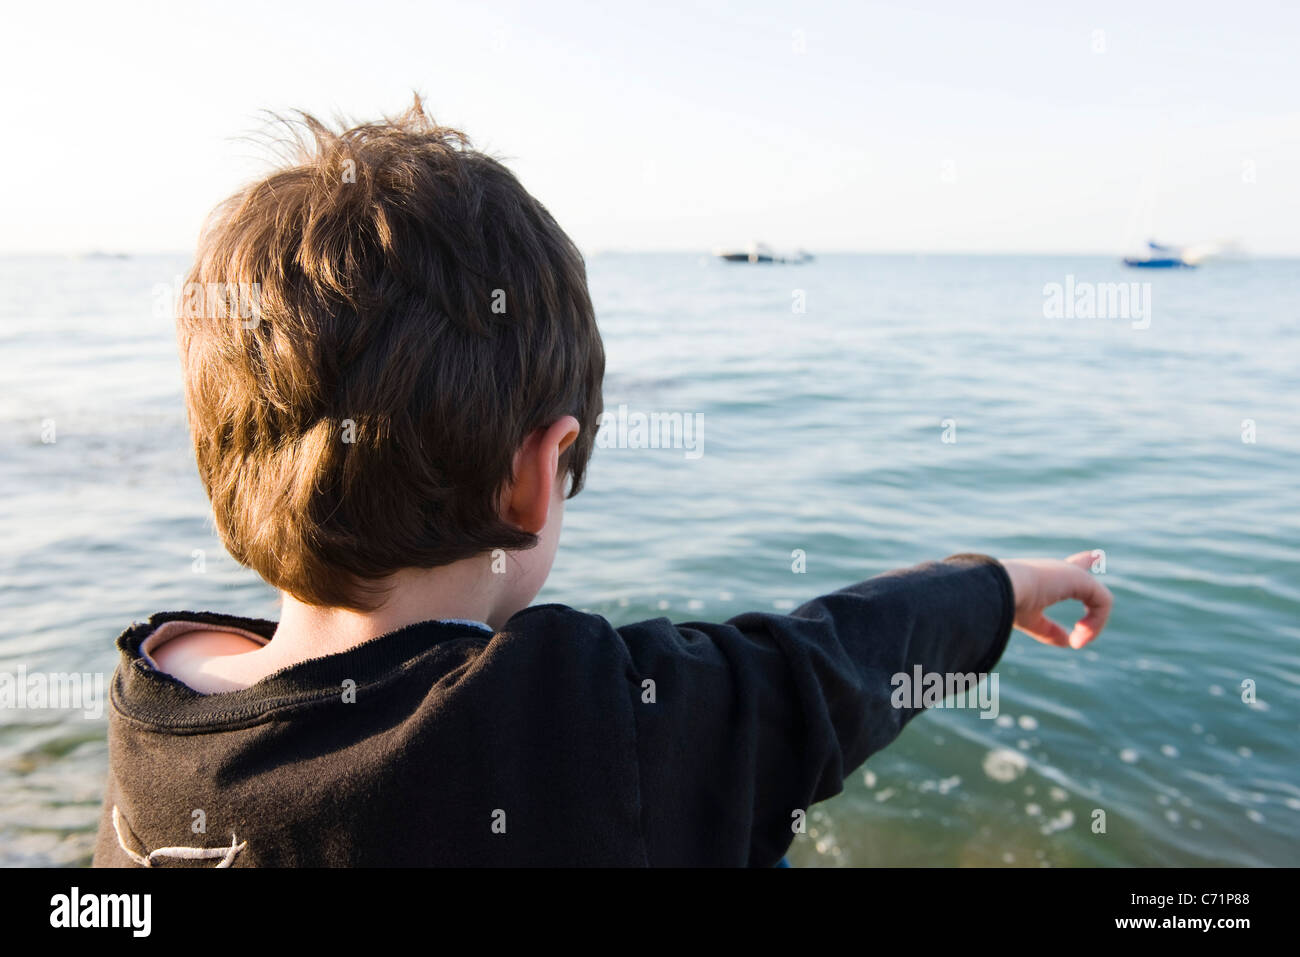 Boy looking at ocean view, pointing - Stock Image